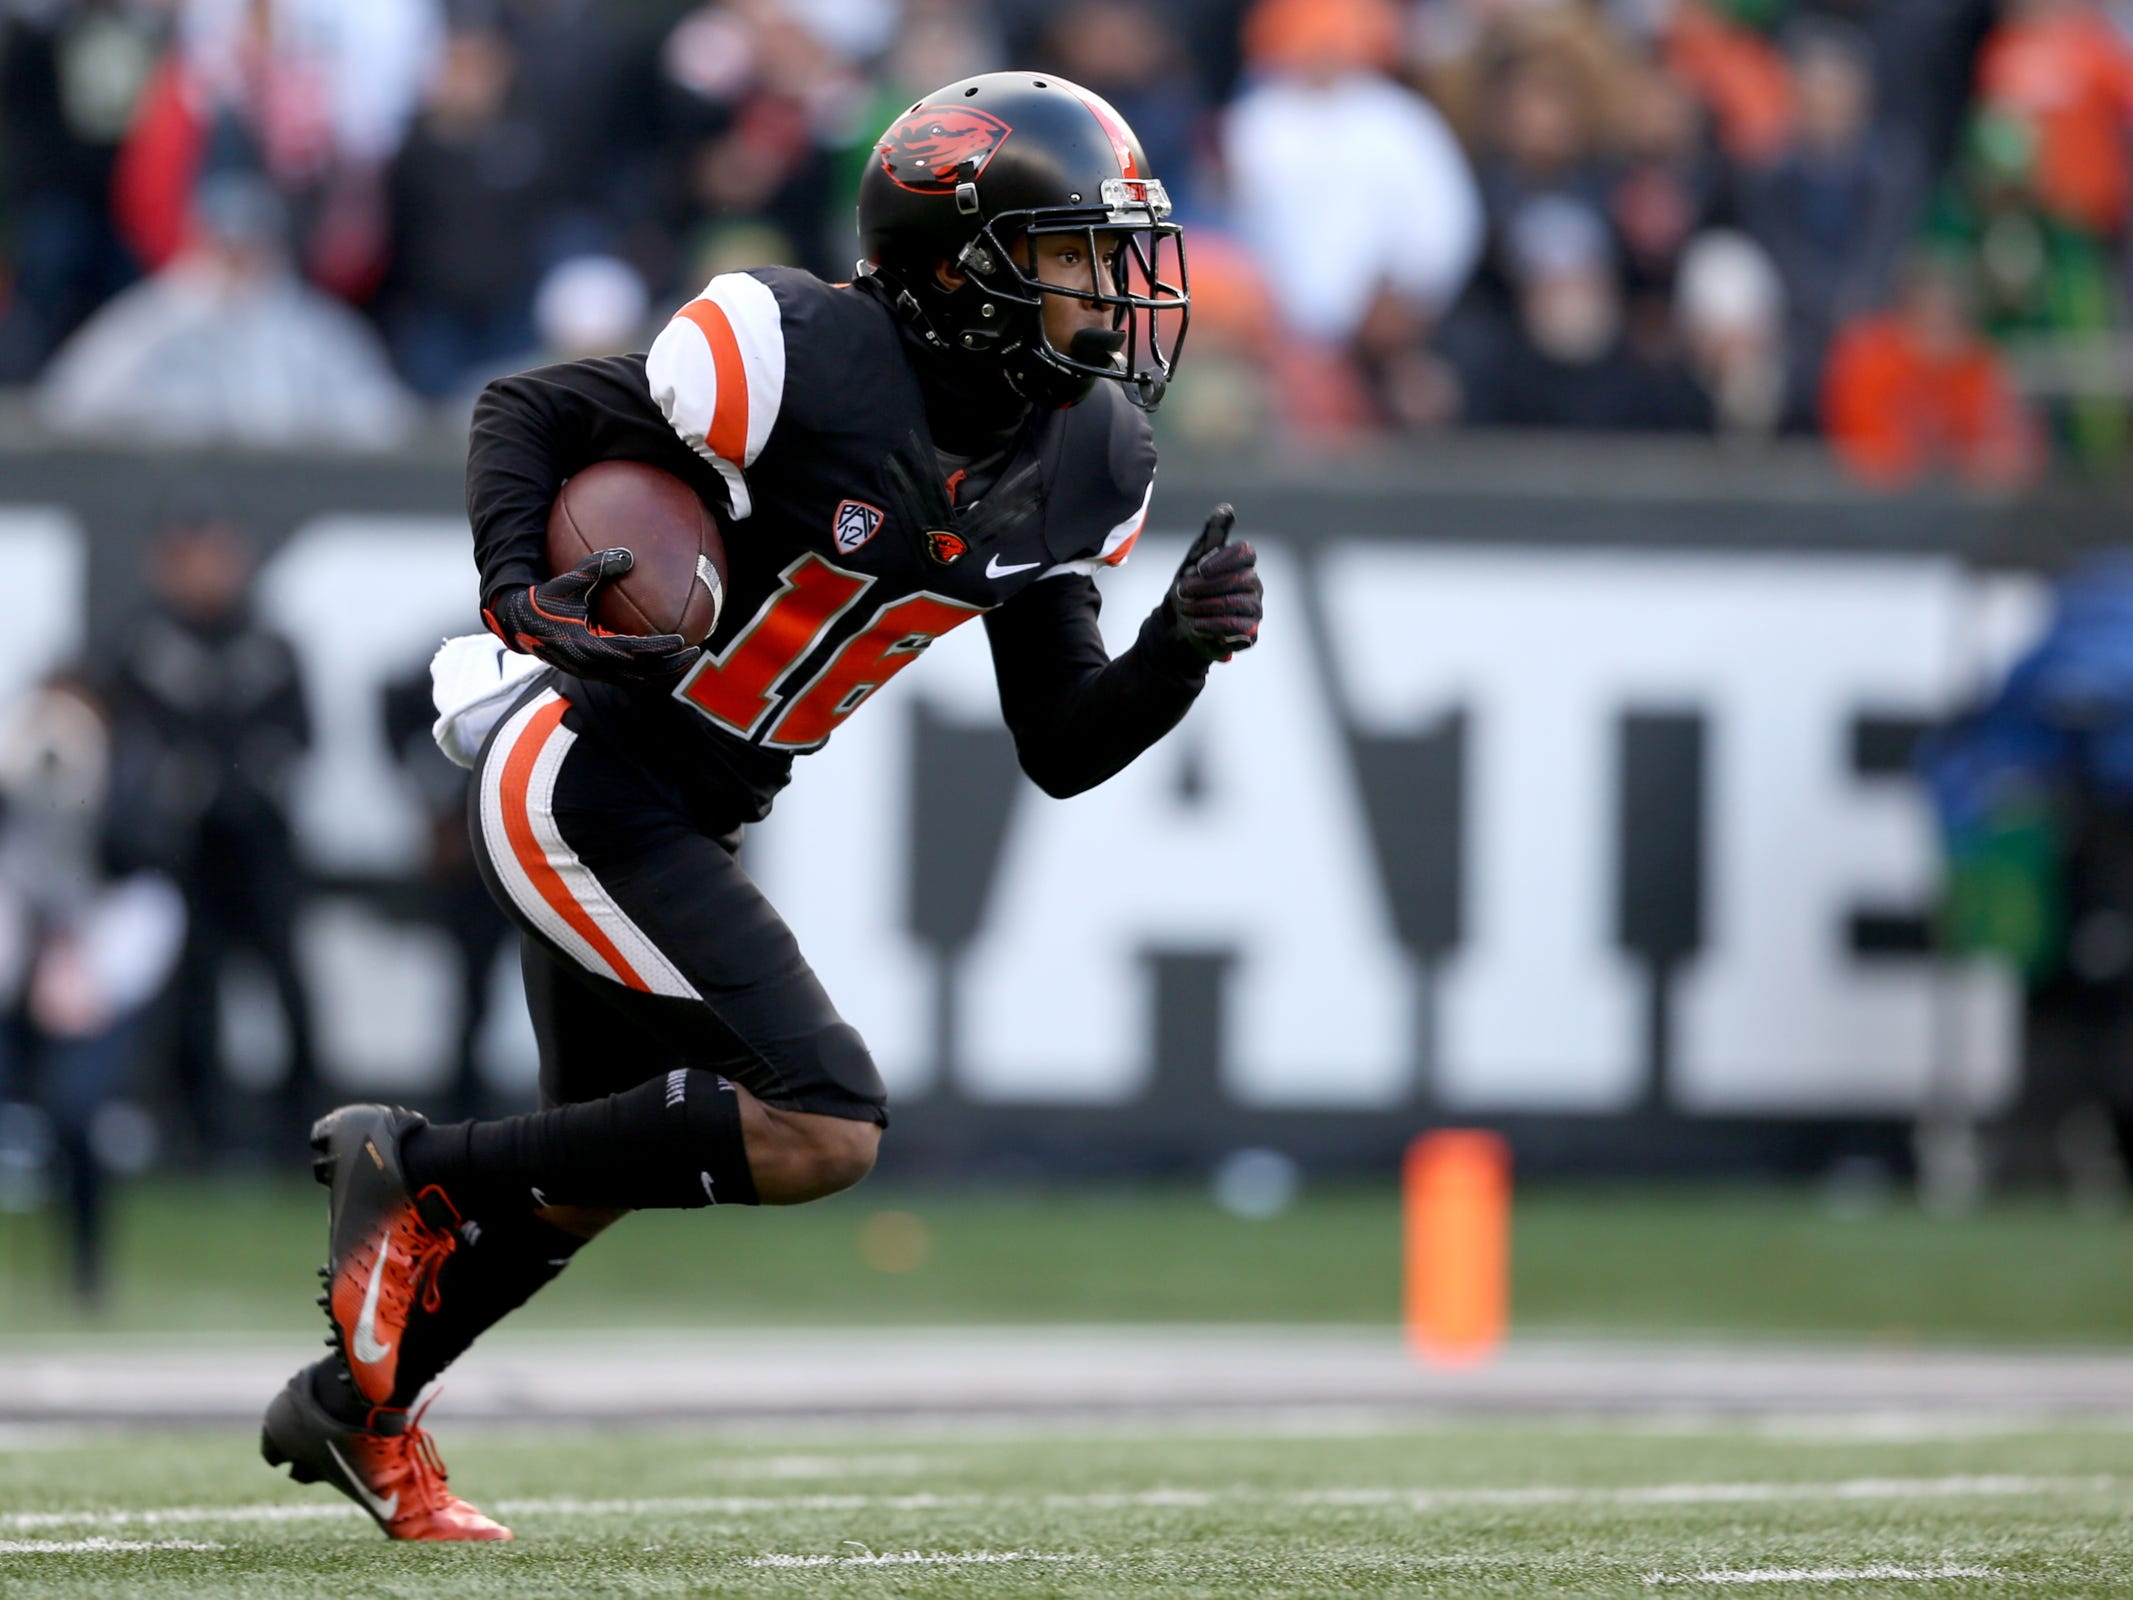 Oregon State's Champ Flemings (16) rushes in the Oregon vs. Oregon State Civil war football game at Oregon State University in Corvallis on Friday, Nov. 23, 2018.